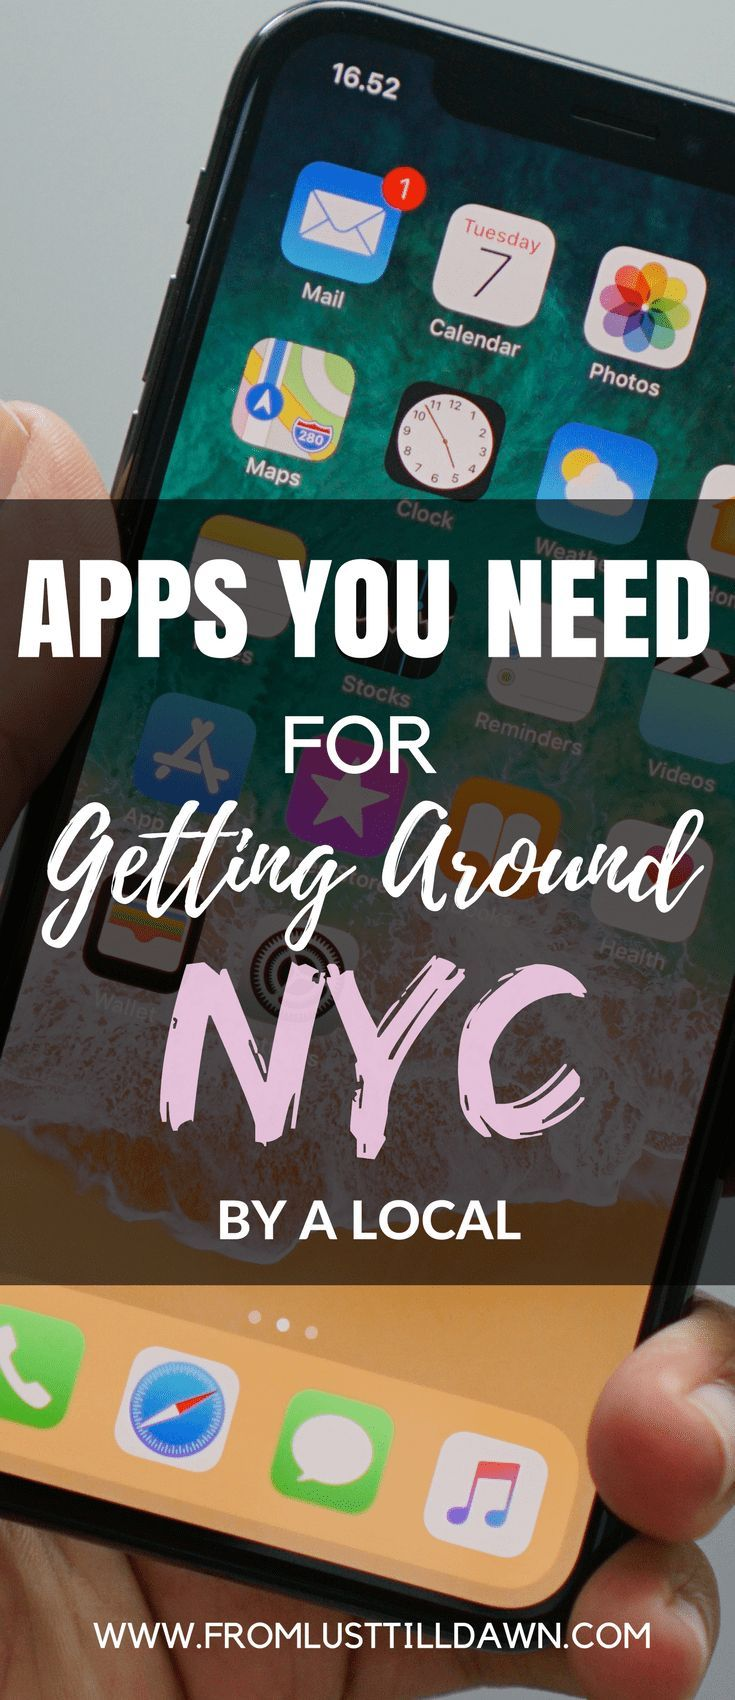 Want to know what NYC subway and travel apps locals use in